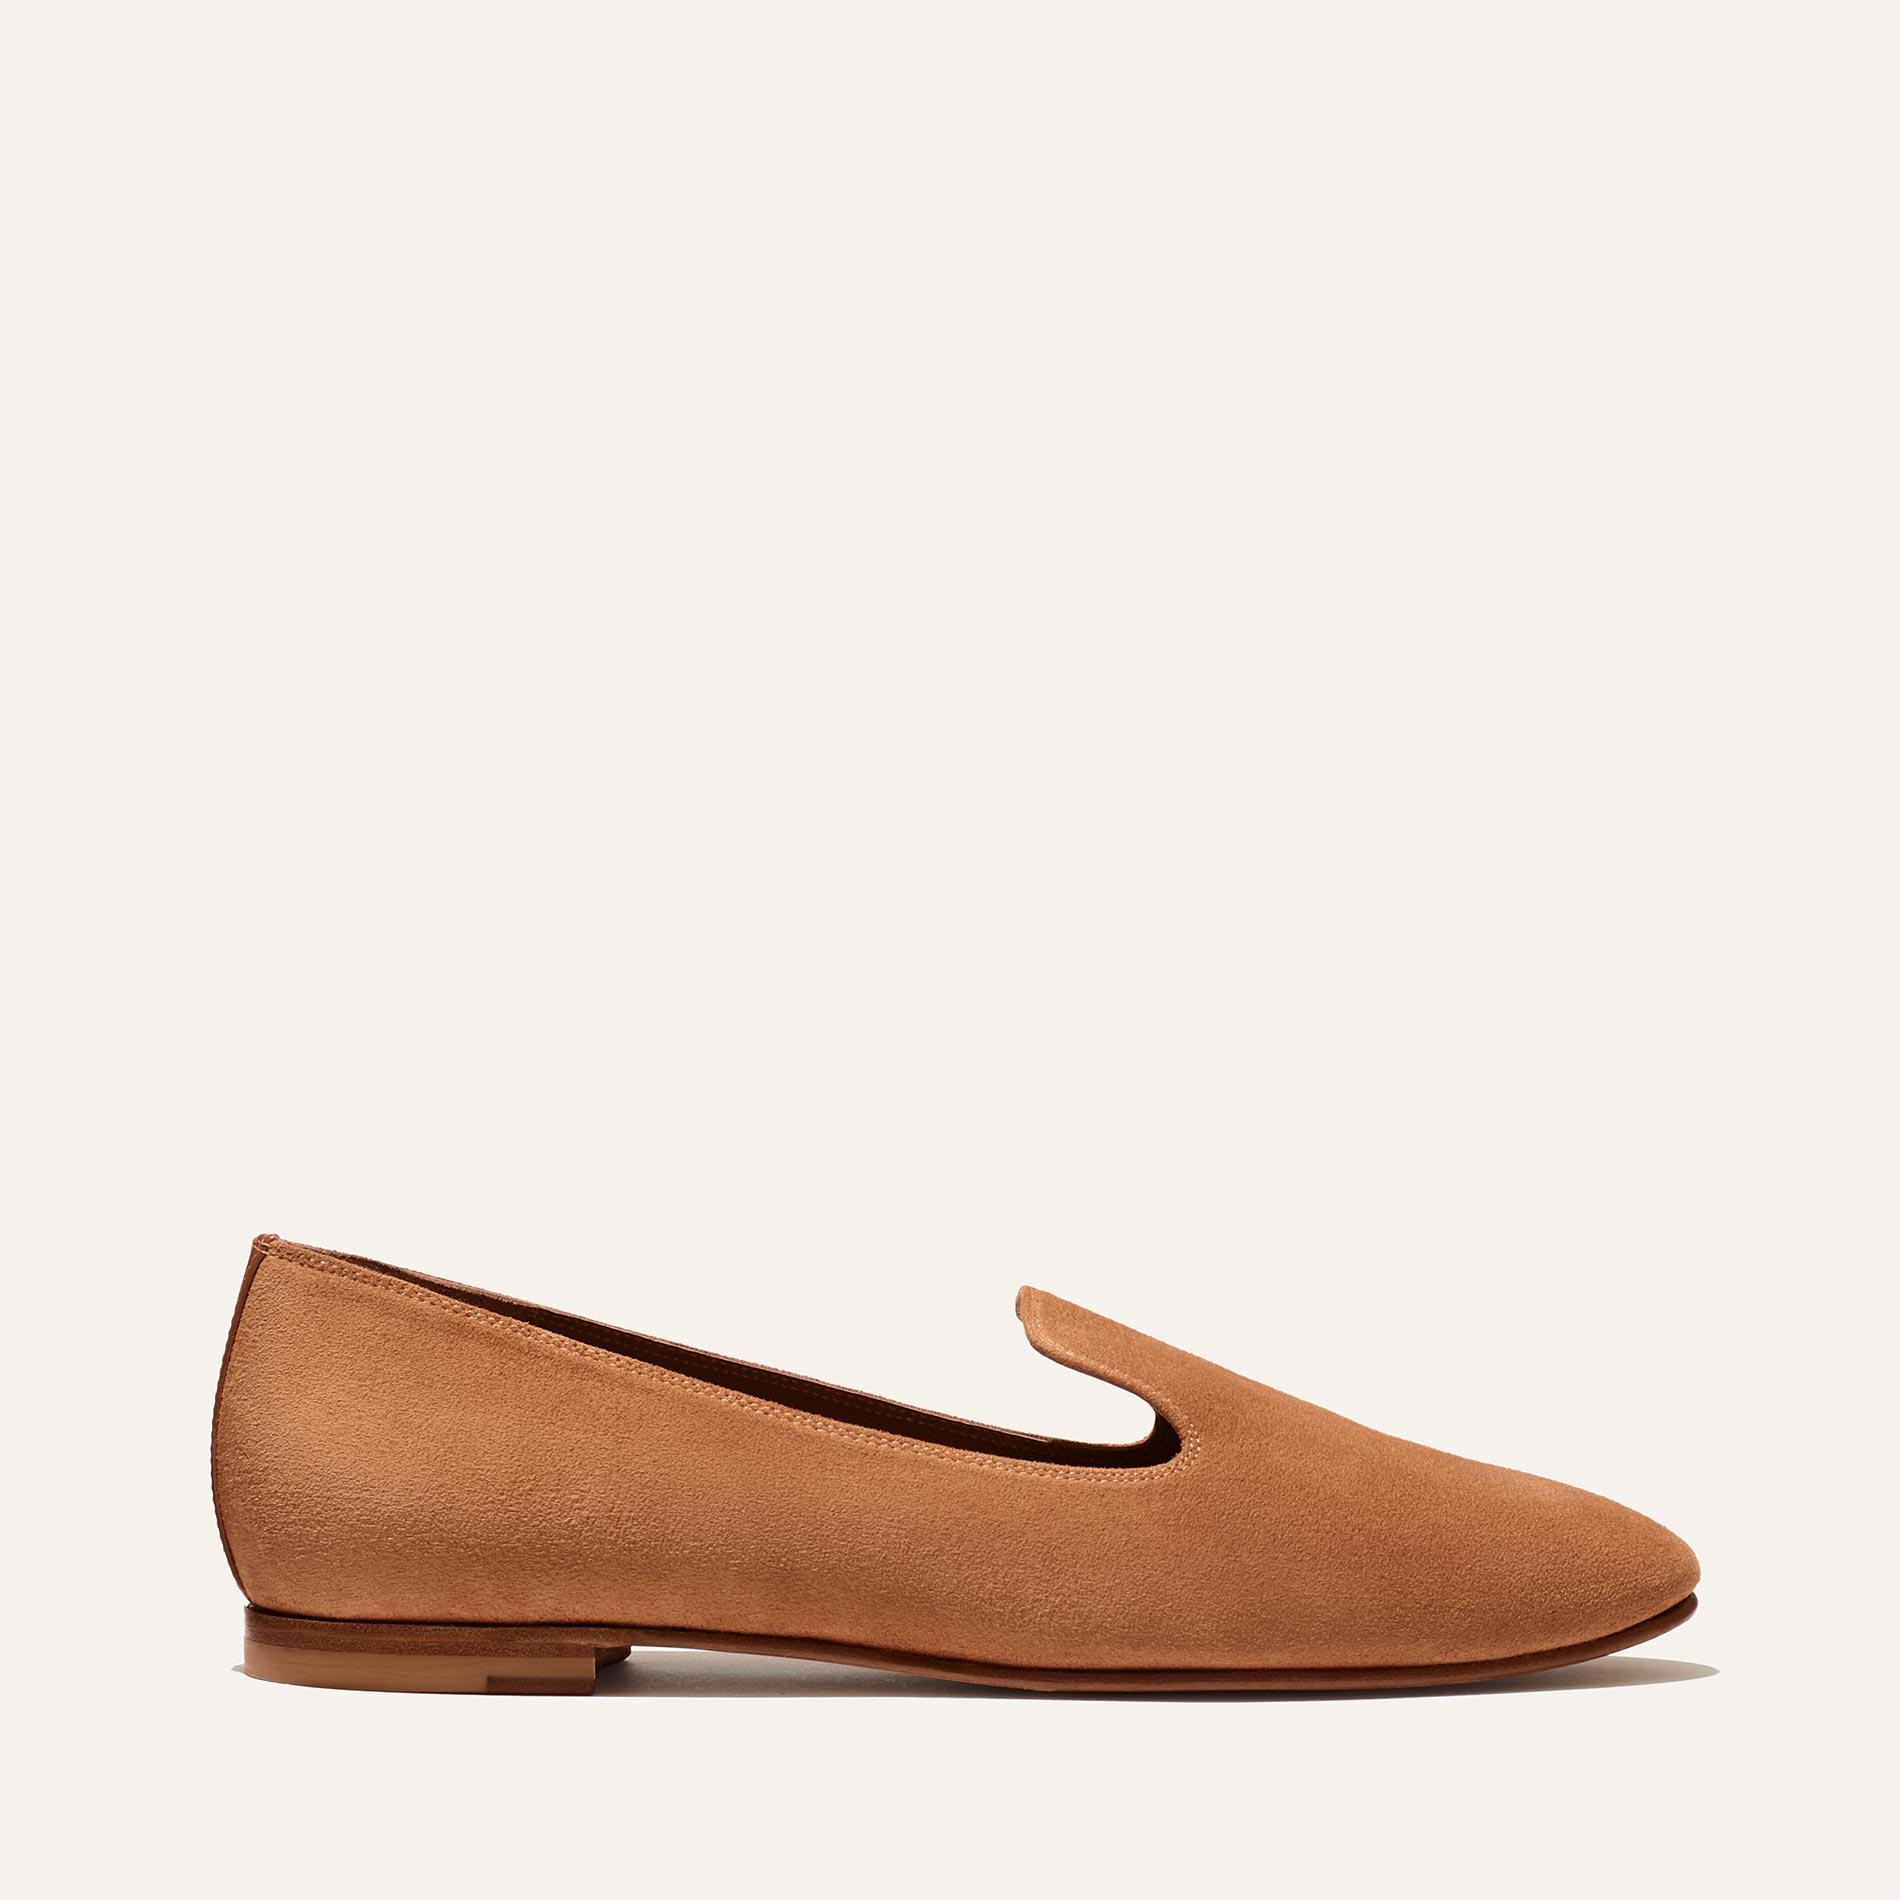 The Loafer - Cognac